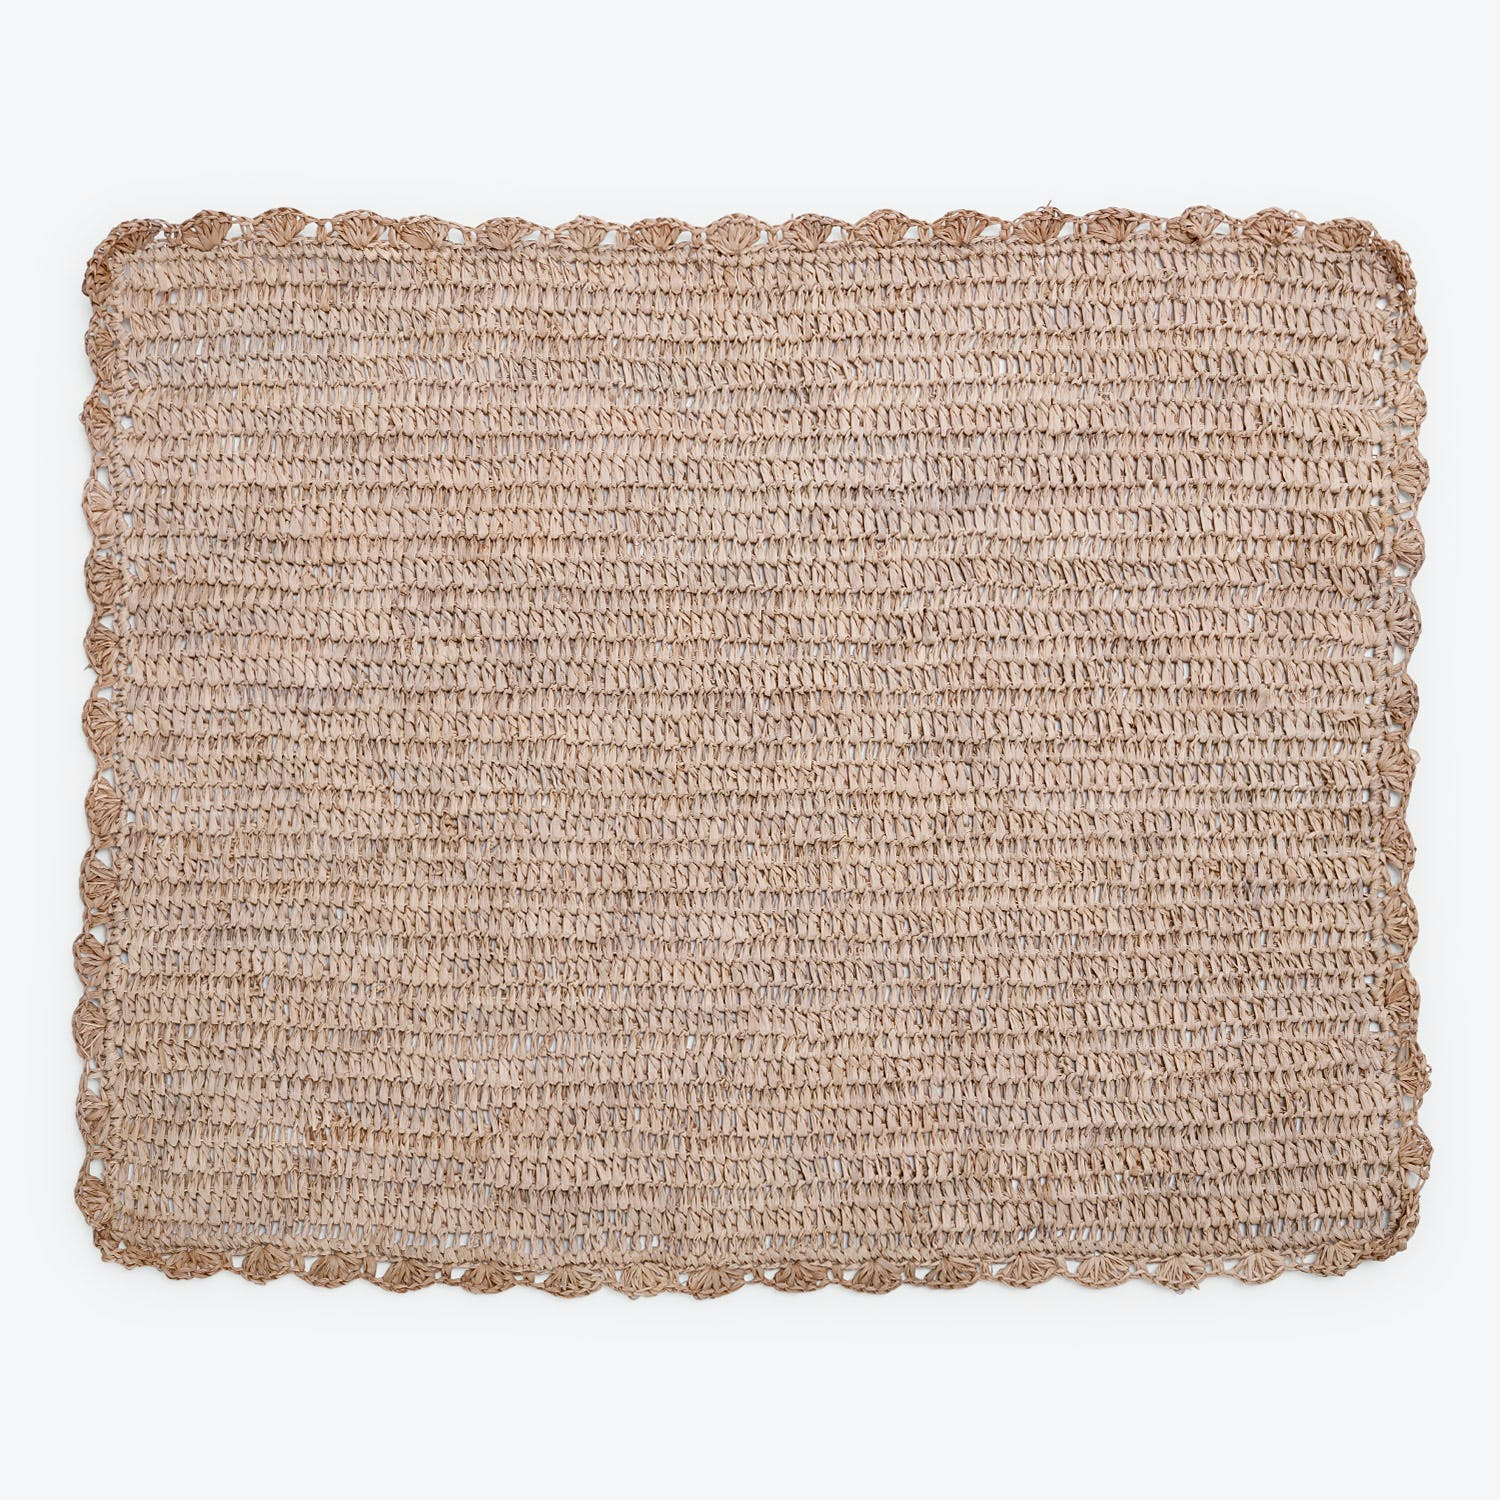 Sil'ouette Natural Raffia Placemat